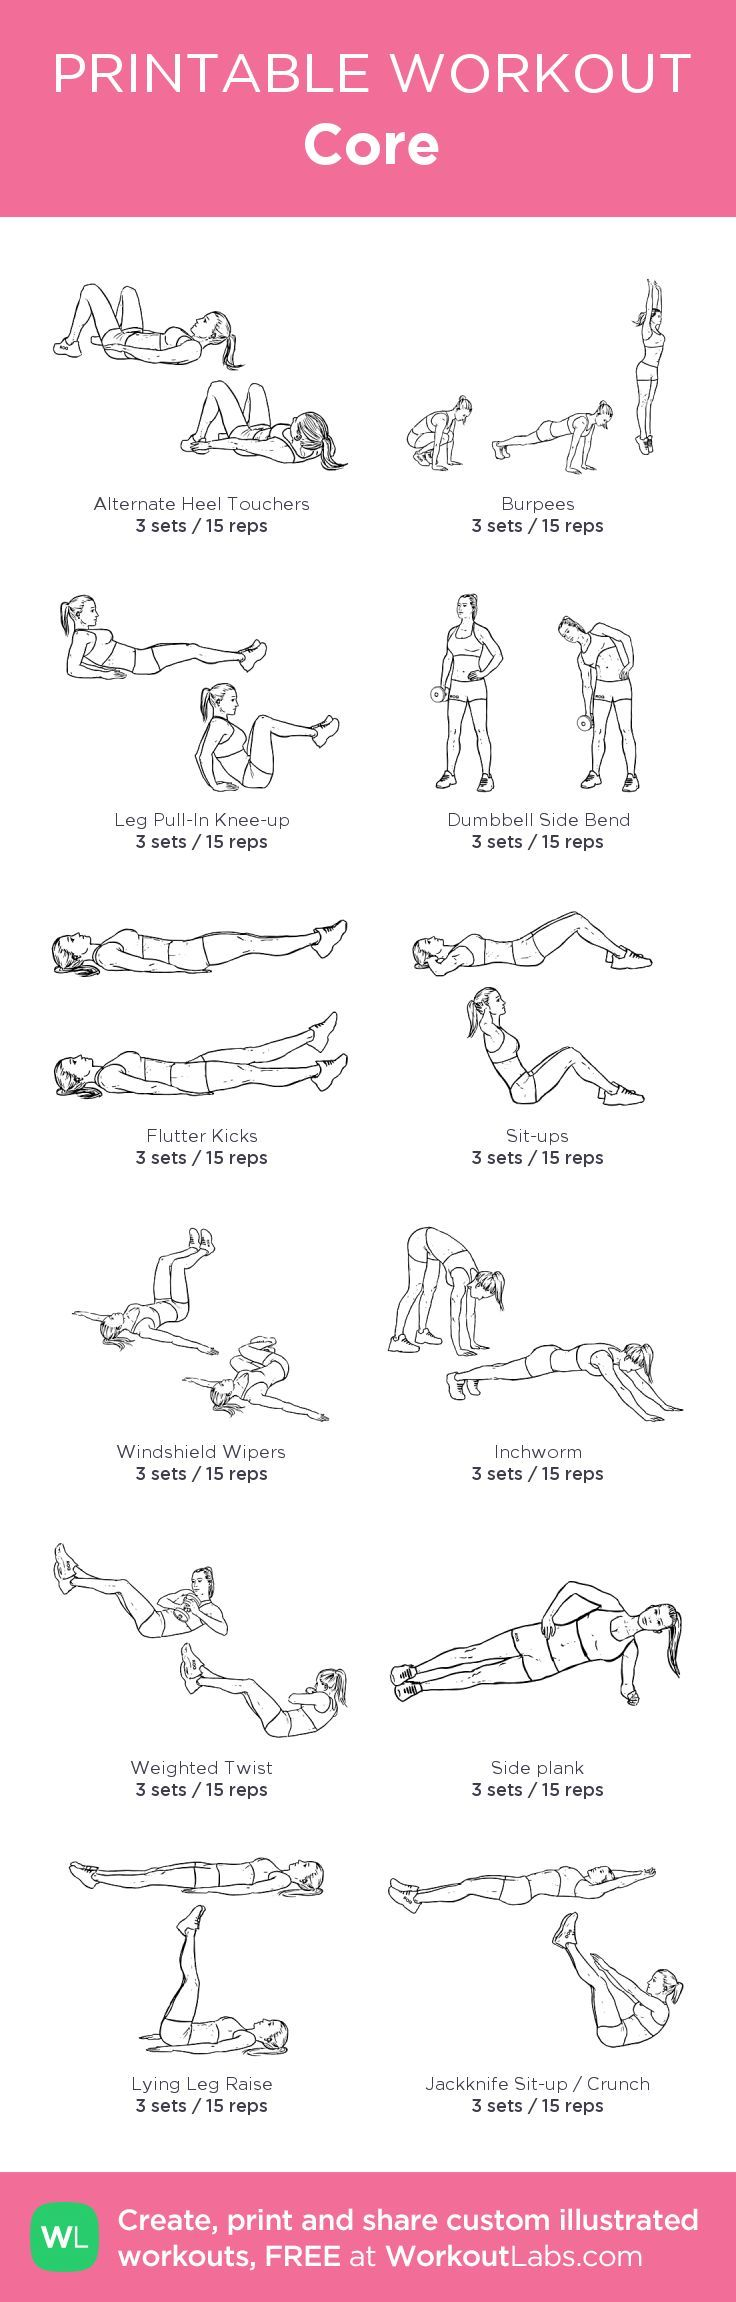 Core my custom printable workout by WorkoutLabs